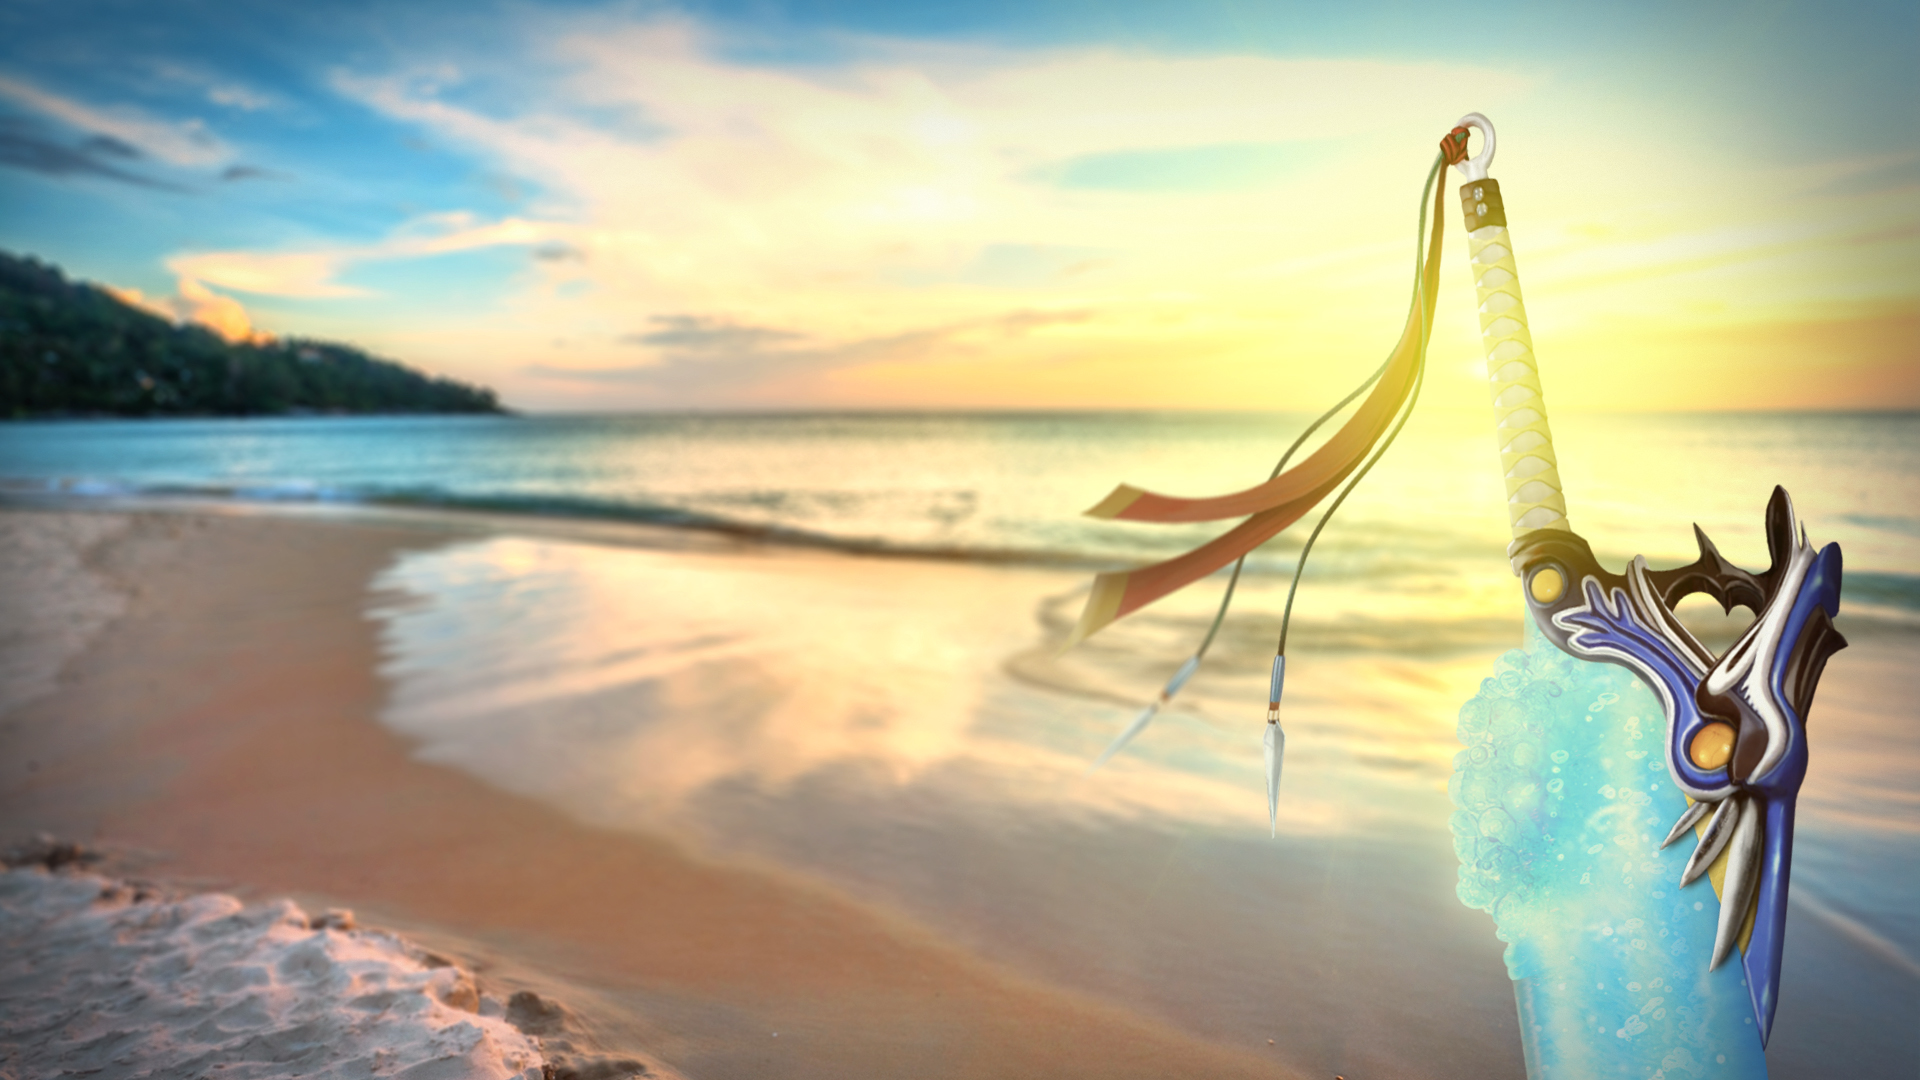 Final Fantasy X Wallpapers Phone Epic Wallpaperz 1920x1080